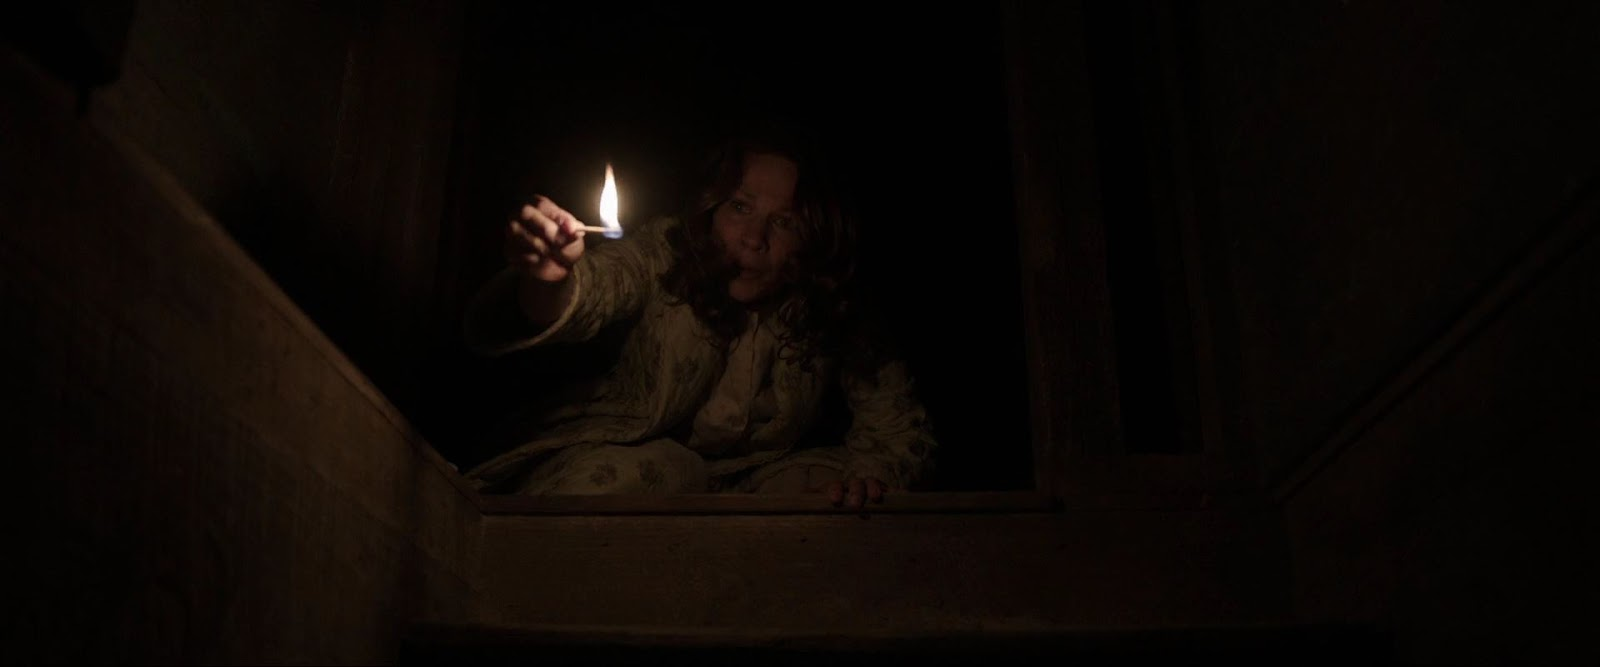 The Conjuring (2013) 4